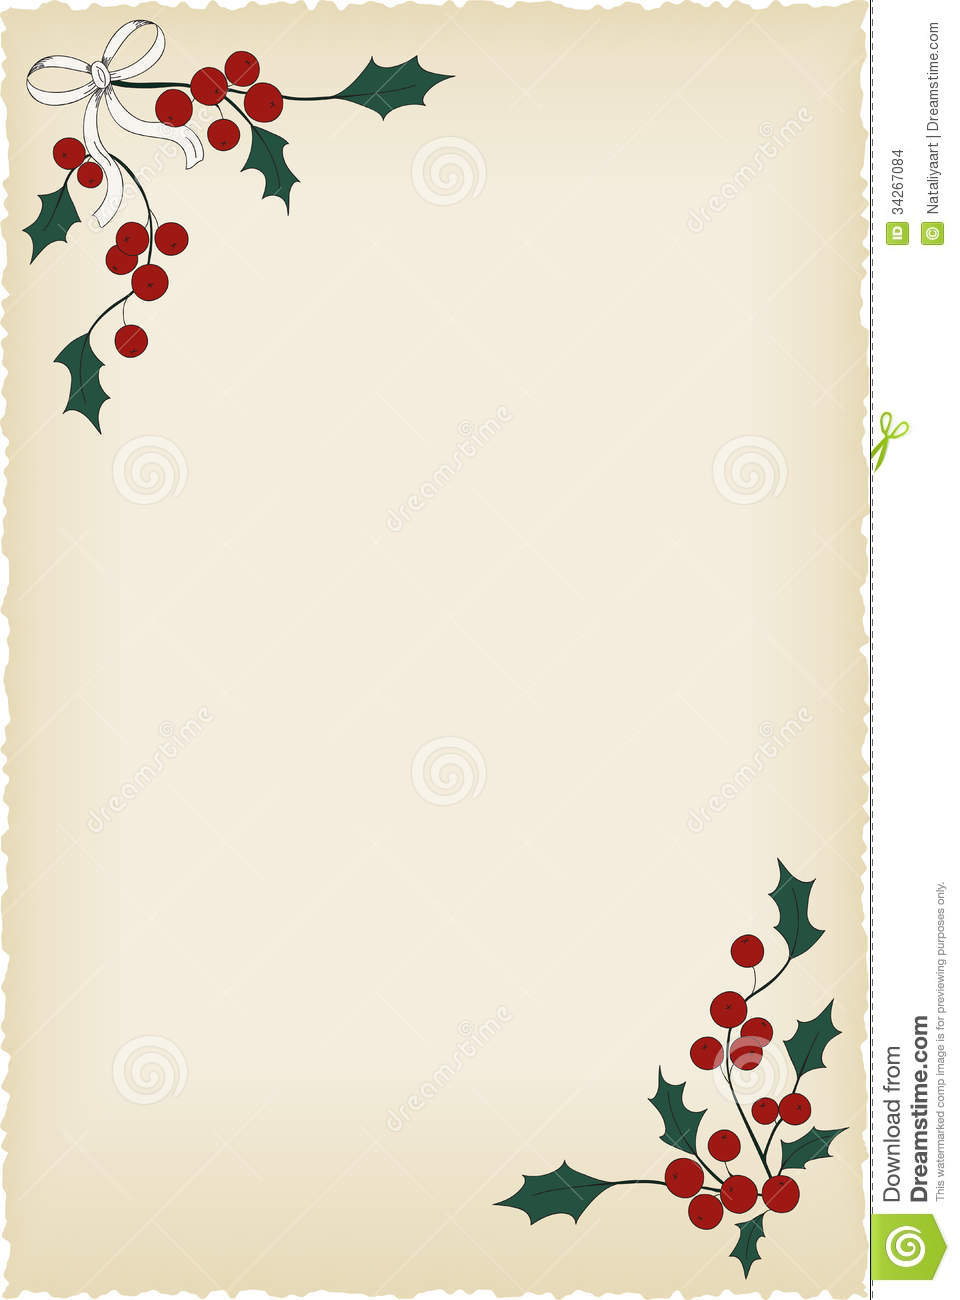 christmas letter backgrounds - Vatoz.atozdevelopment.co